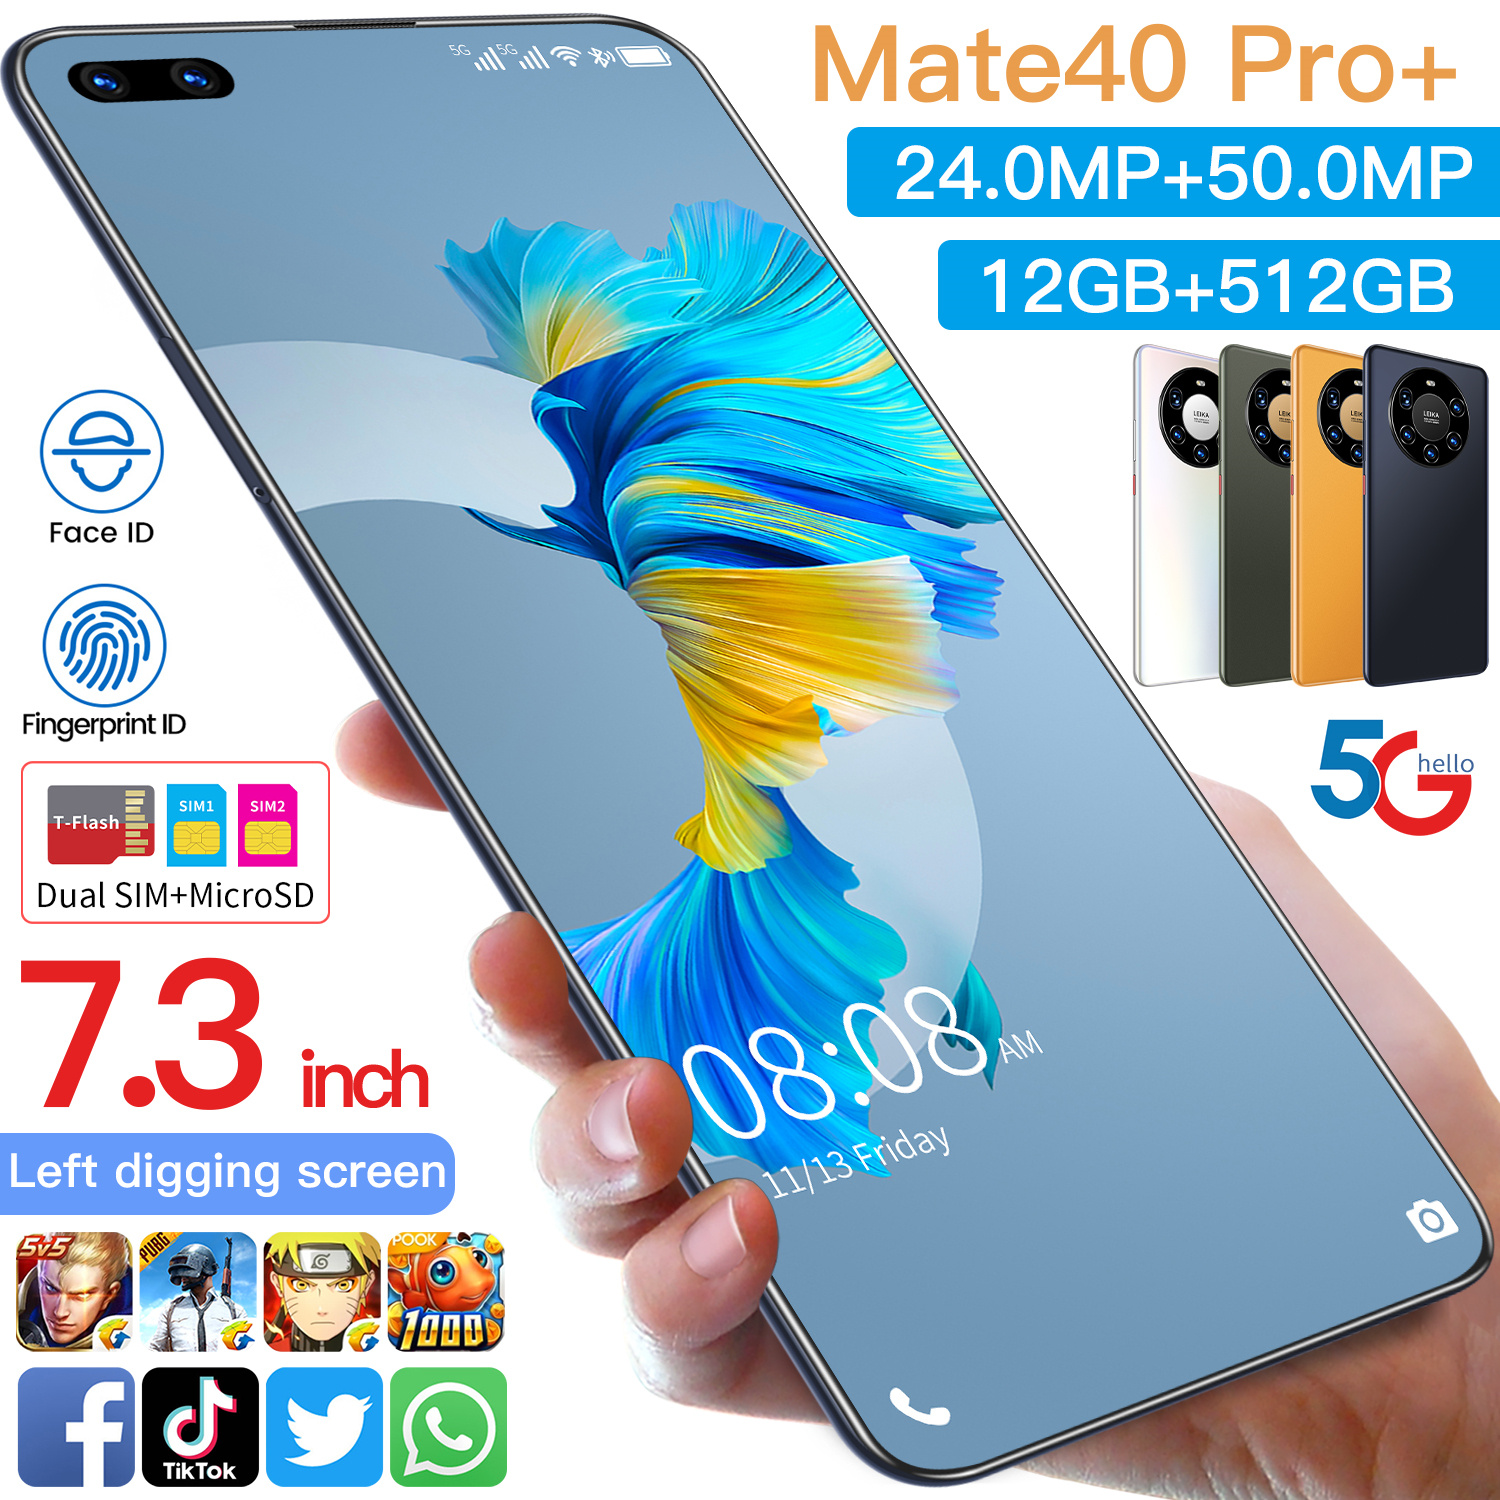 Mate 40 Pro+ Hot Selling 12GB+512GB 7.3Inch full Display Android 10.0 Mobile Phone Cell Phone Smartphone